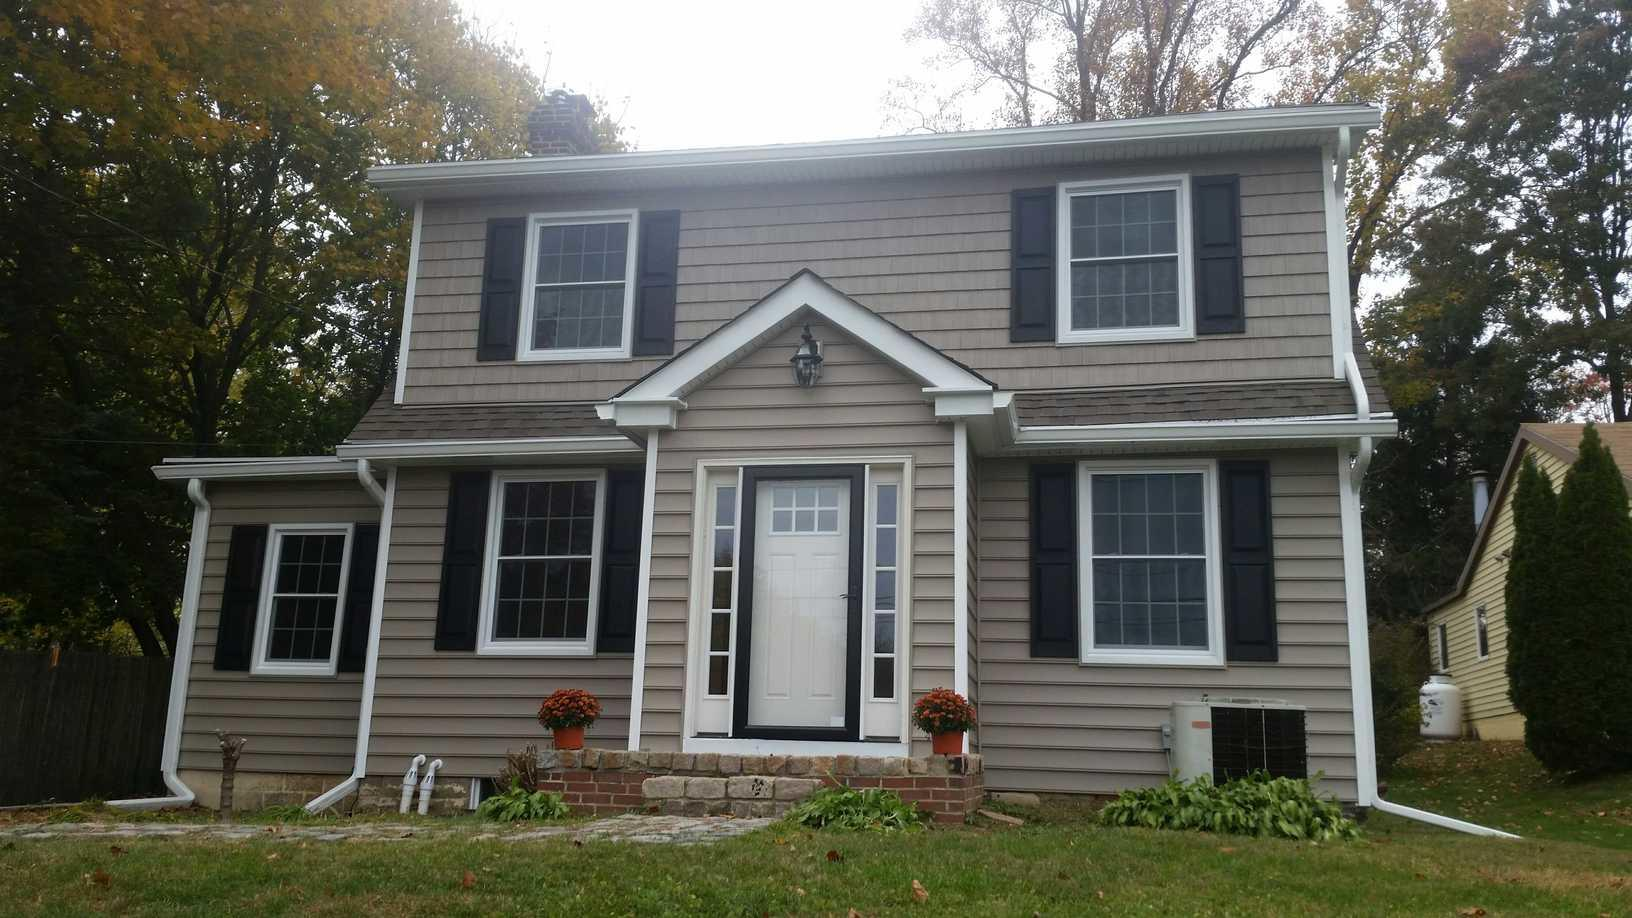 Siding and Window Replacement in Willow Grove, PA - After Photo